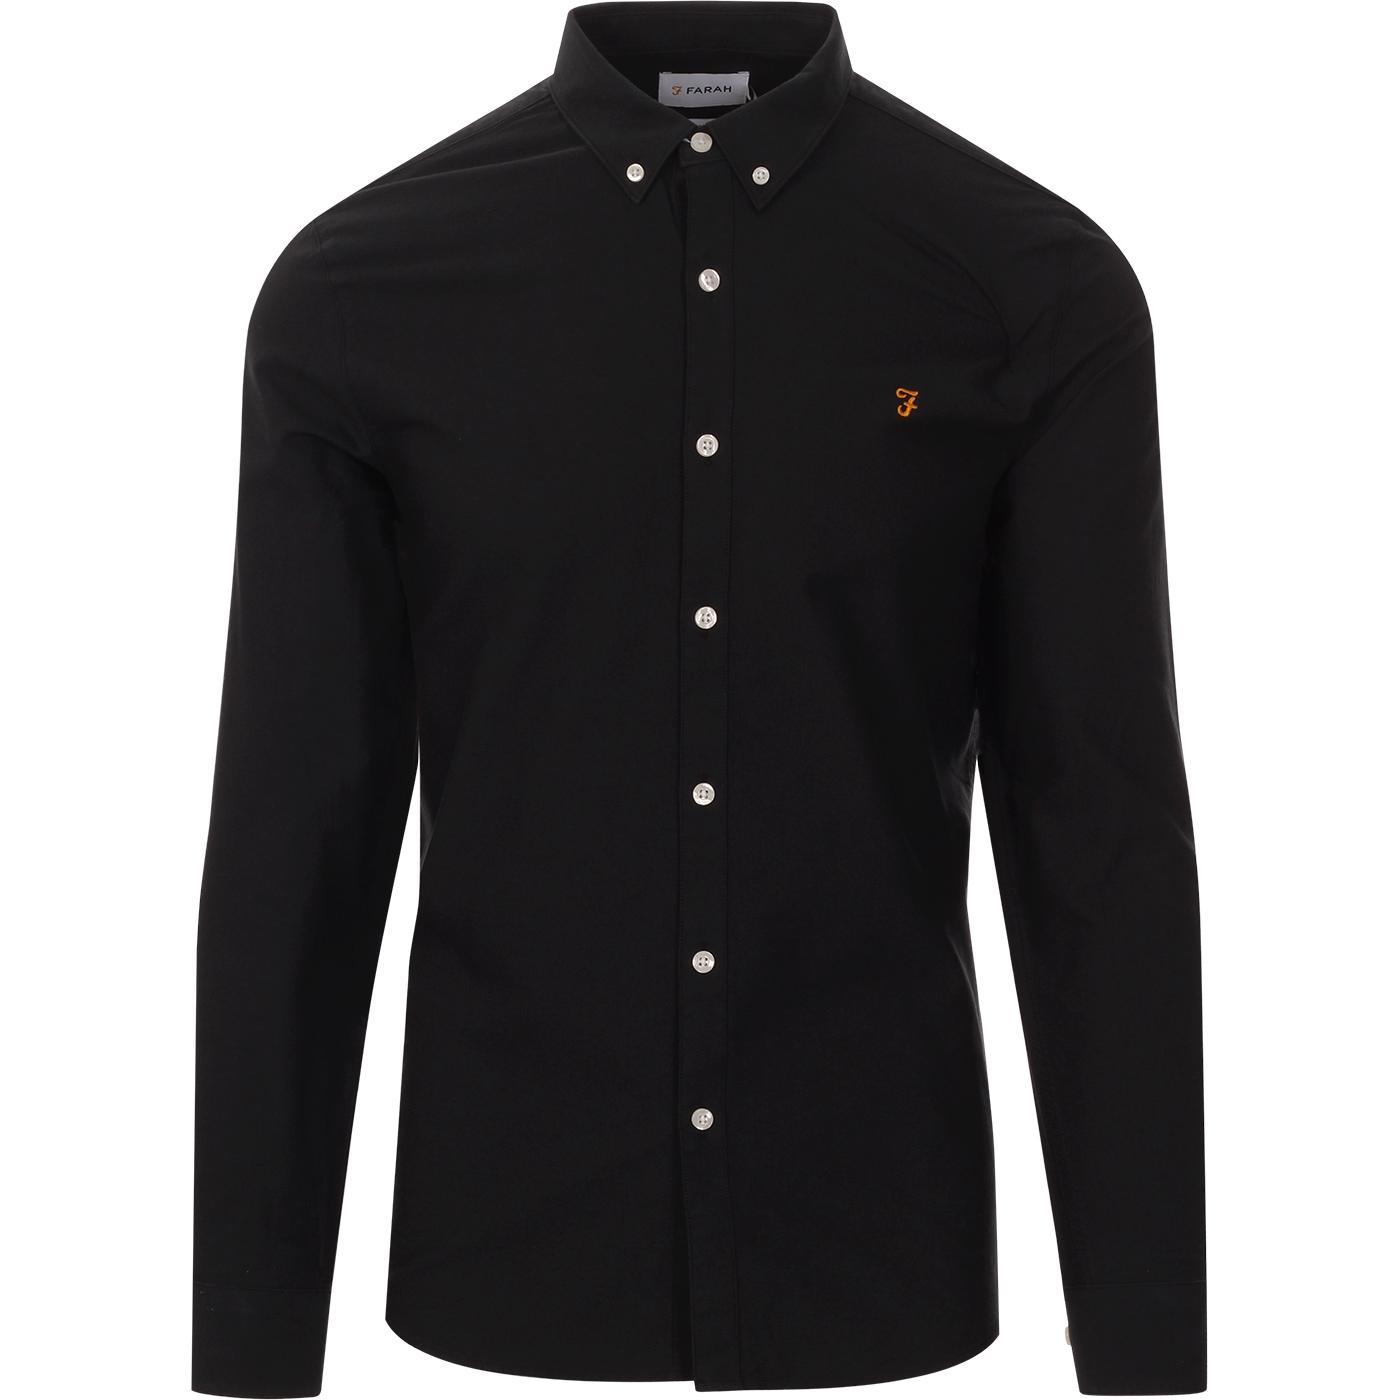 Brewer FARAH Slim Fit Mod L/S Oxford Shirt In Ink